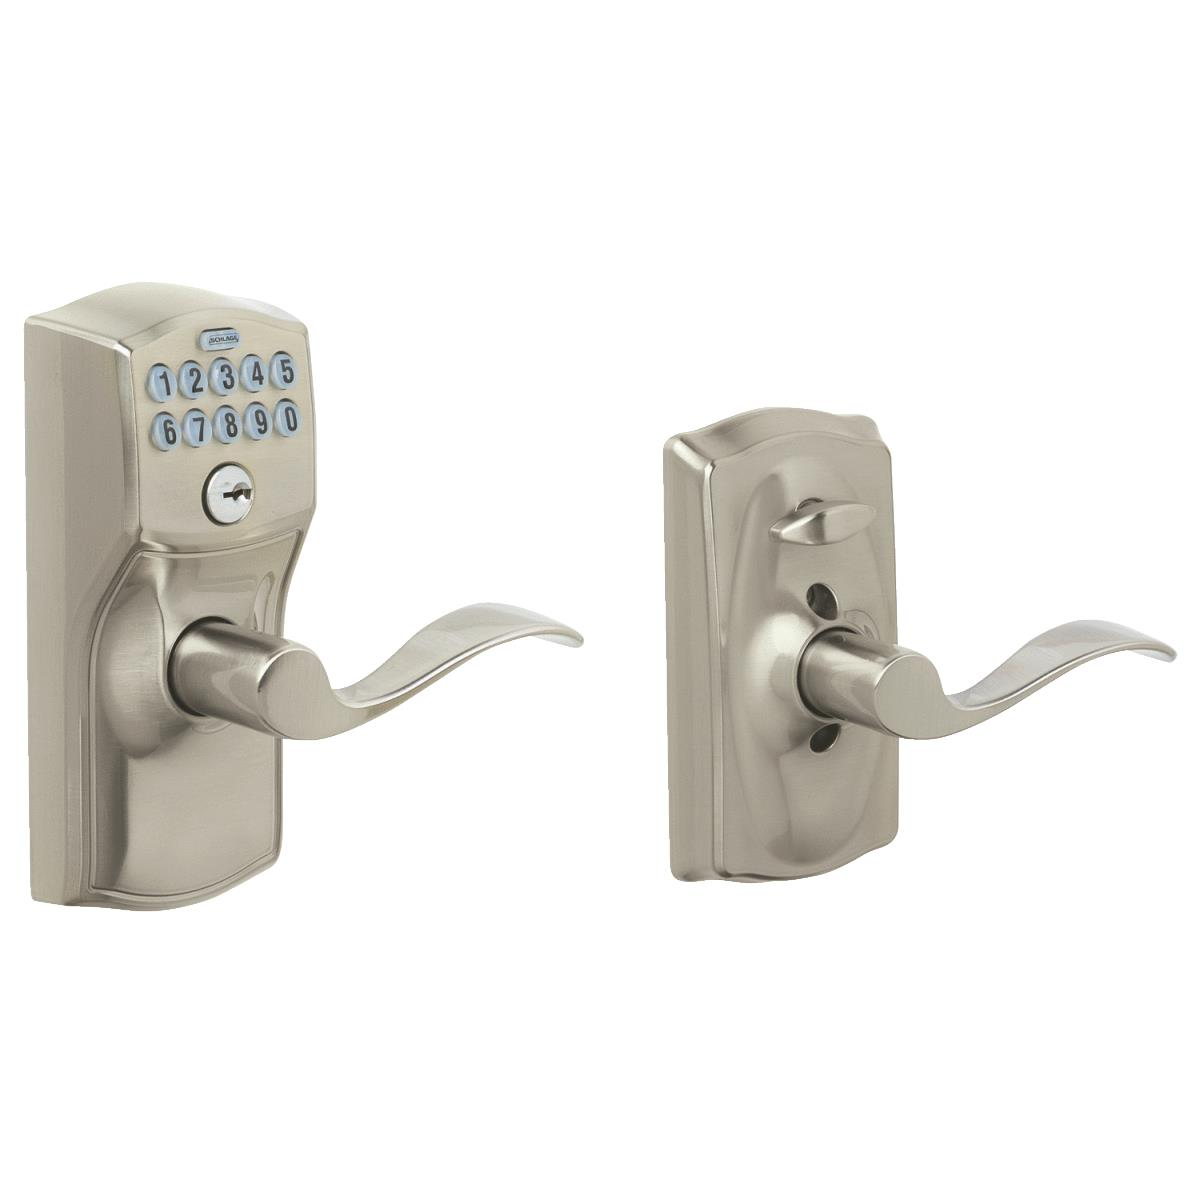 Schlage Camelot Lever Electronic Keypad Entry Lock